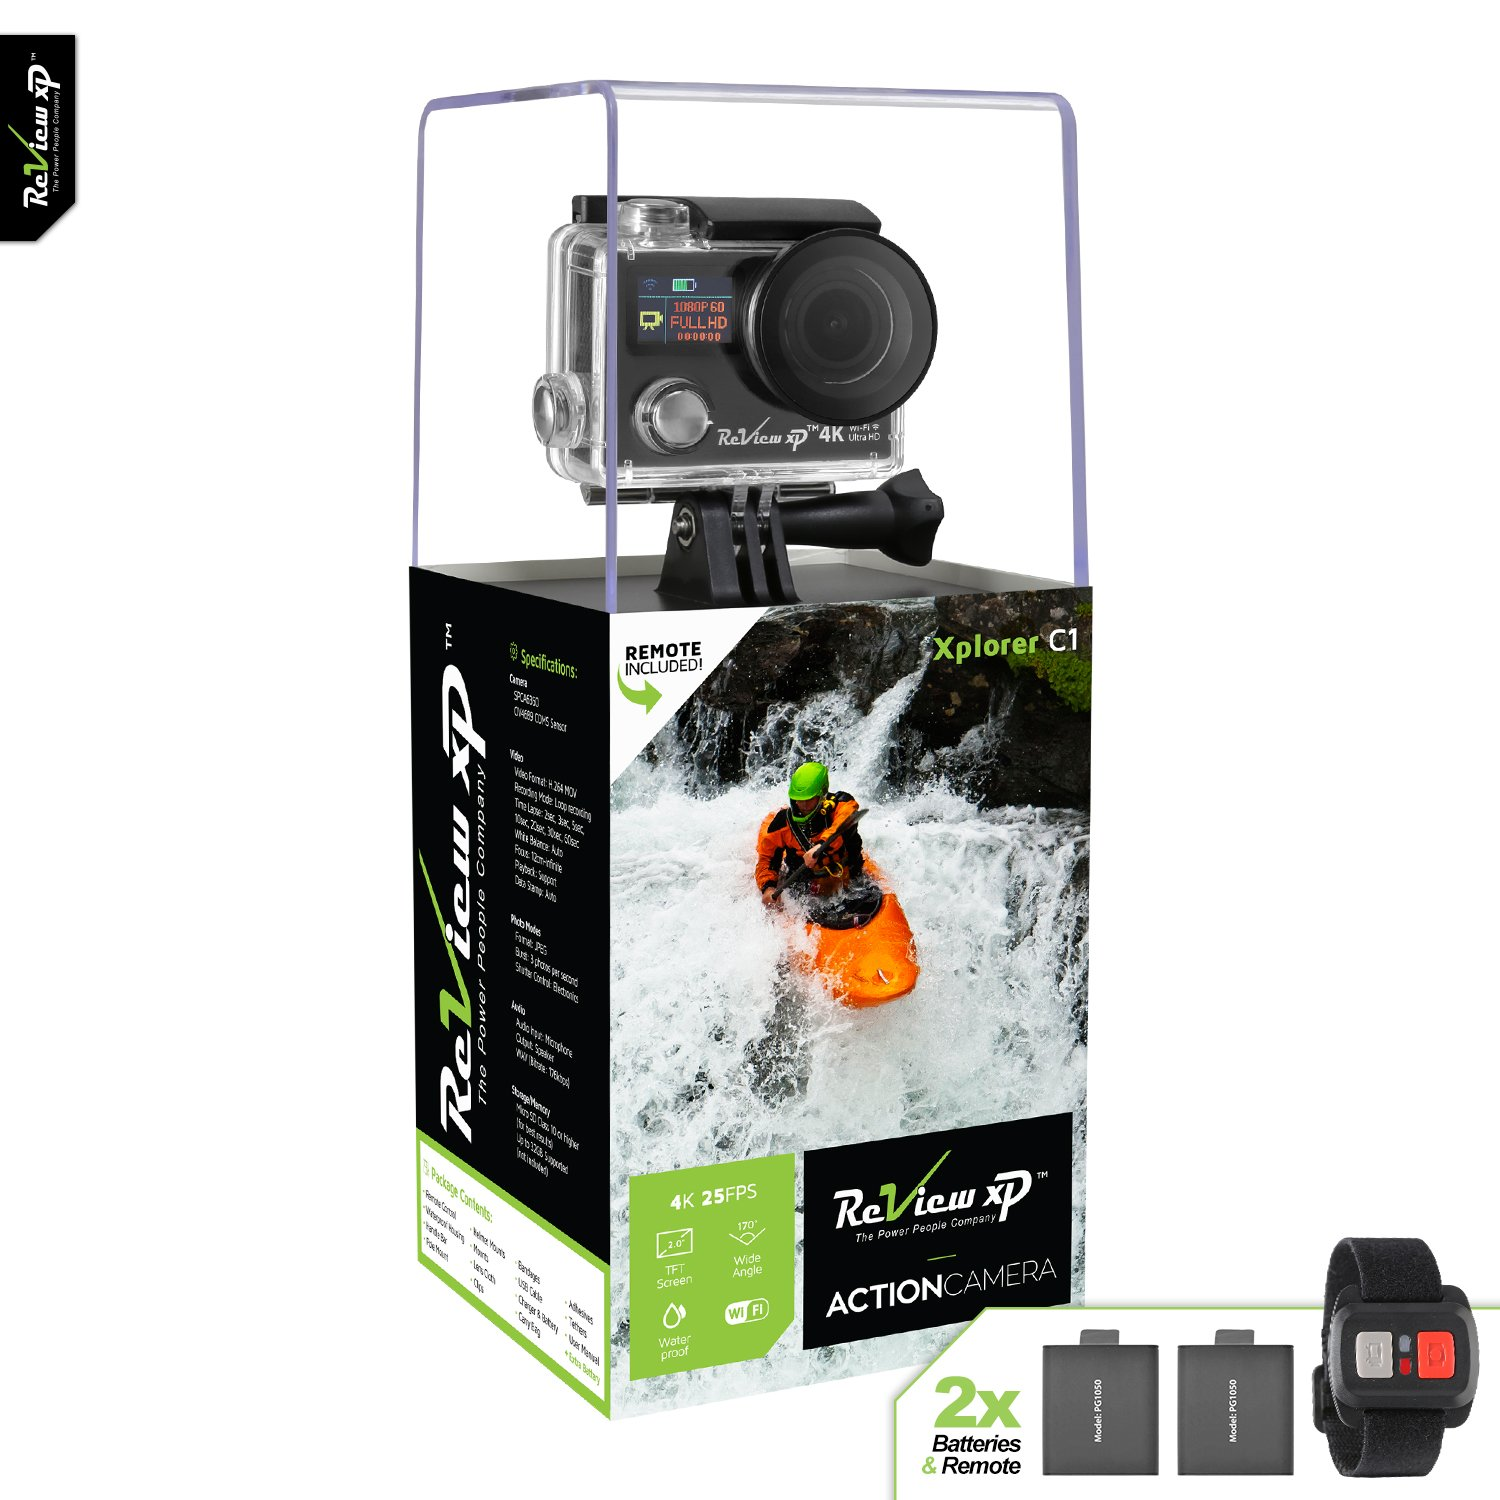 Review XP 4K Wi-Fi Waterproof Sports Action Camera 12MP 25fps HD Video Underwater Camcorder 170° Wide Angle Dual Screen 2 Batteries Accessories Kit Remote Control – Black